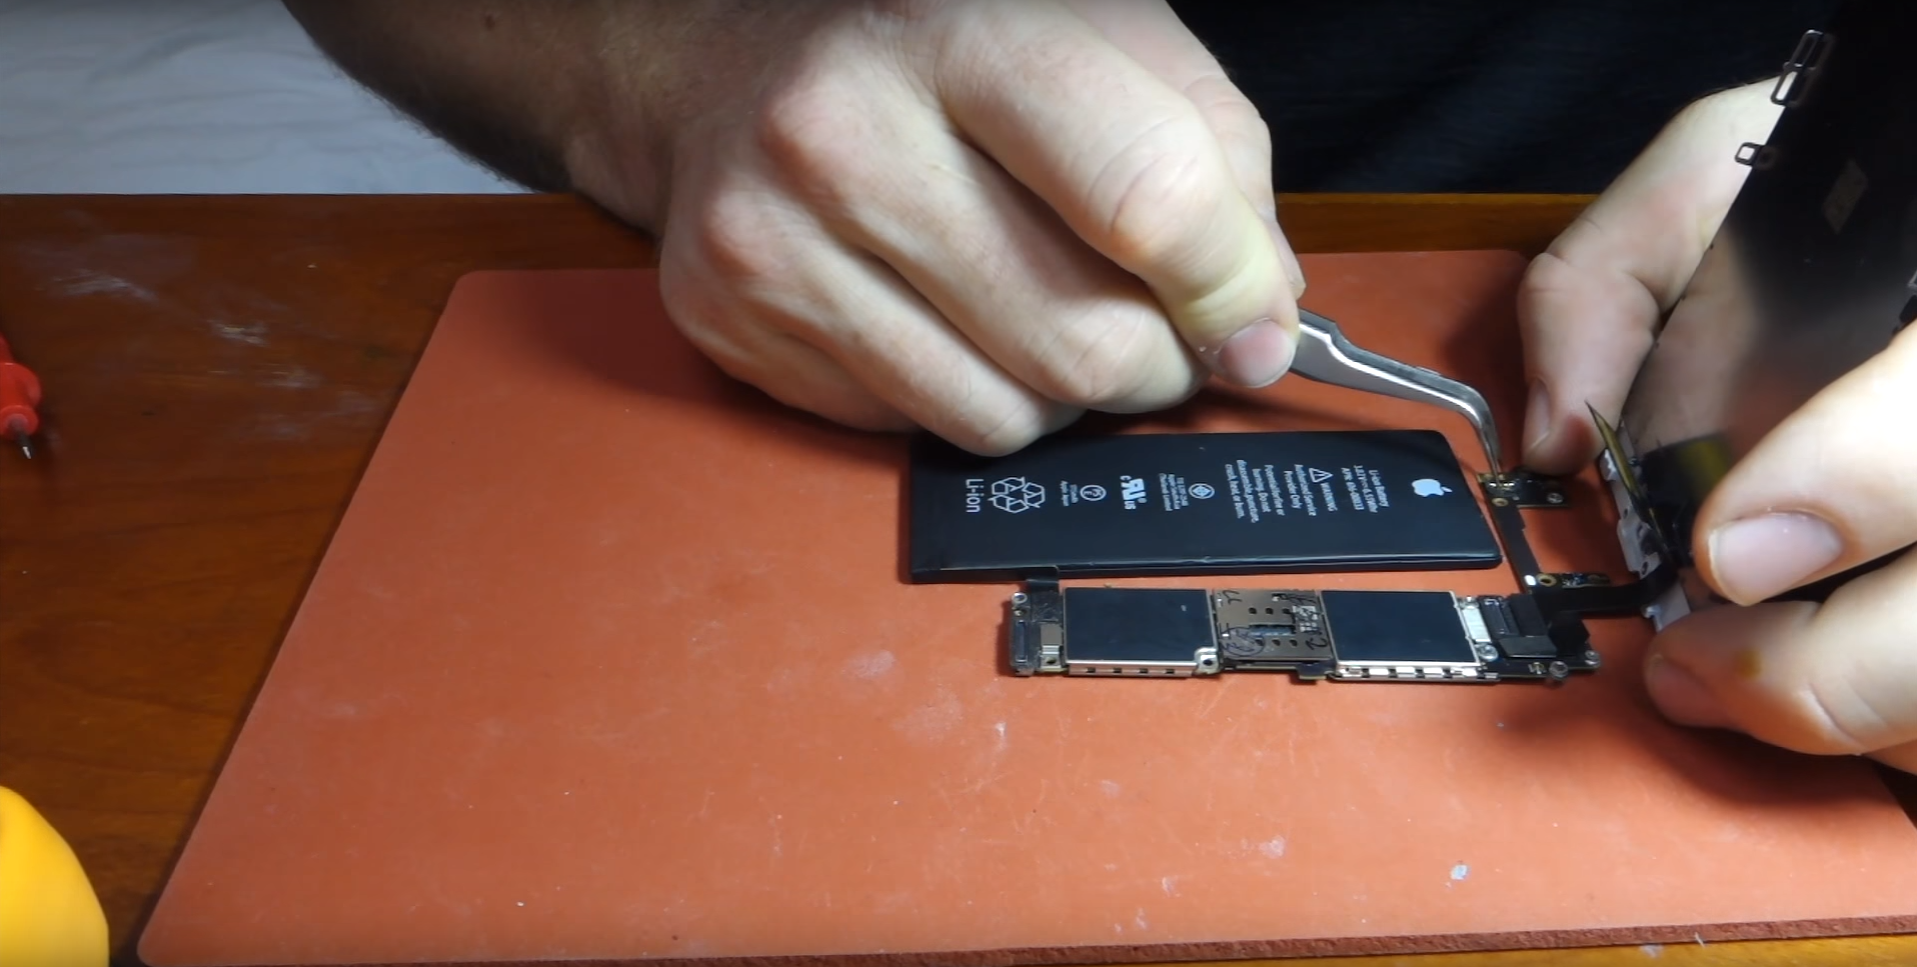 How Did a Man Assemble His Own iPhone by Buying Individual Parts